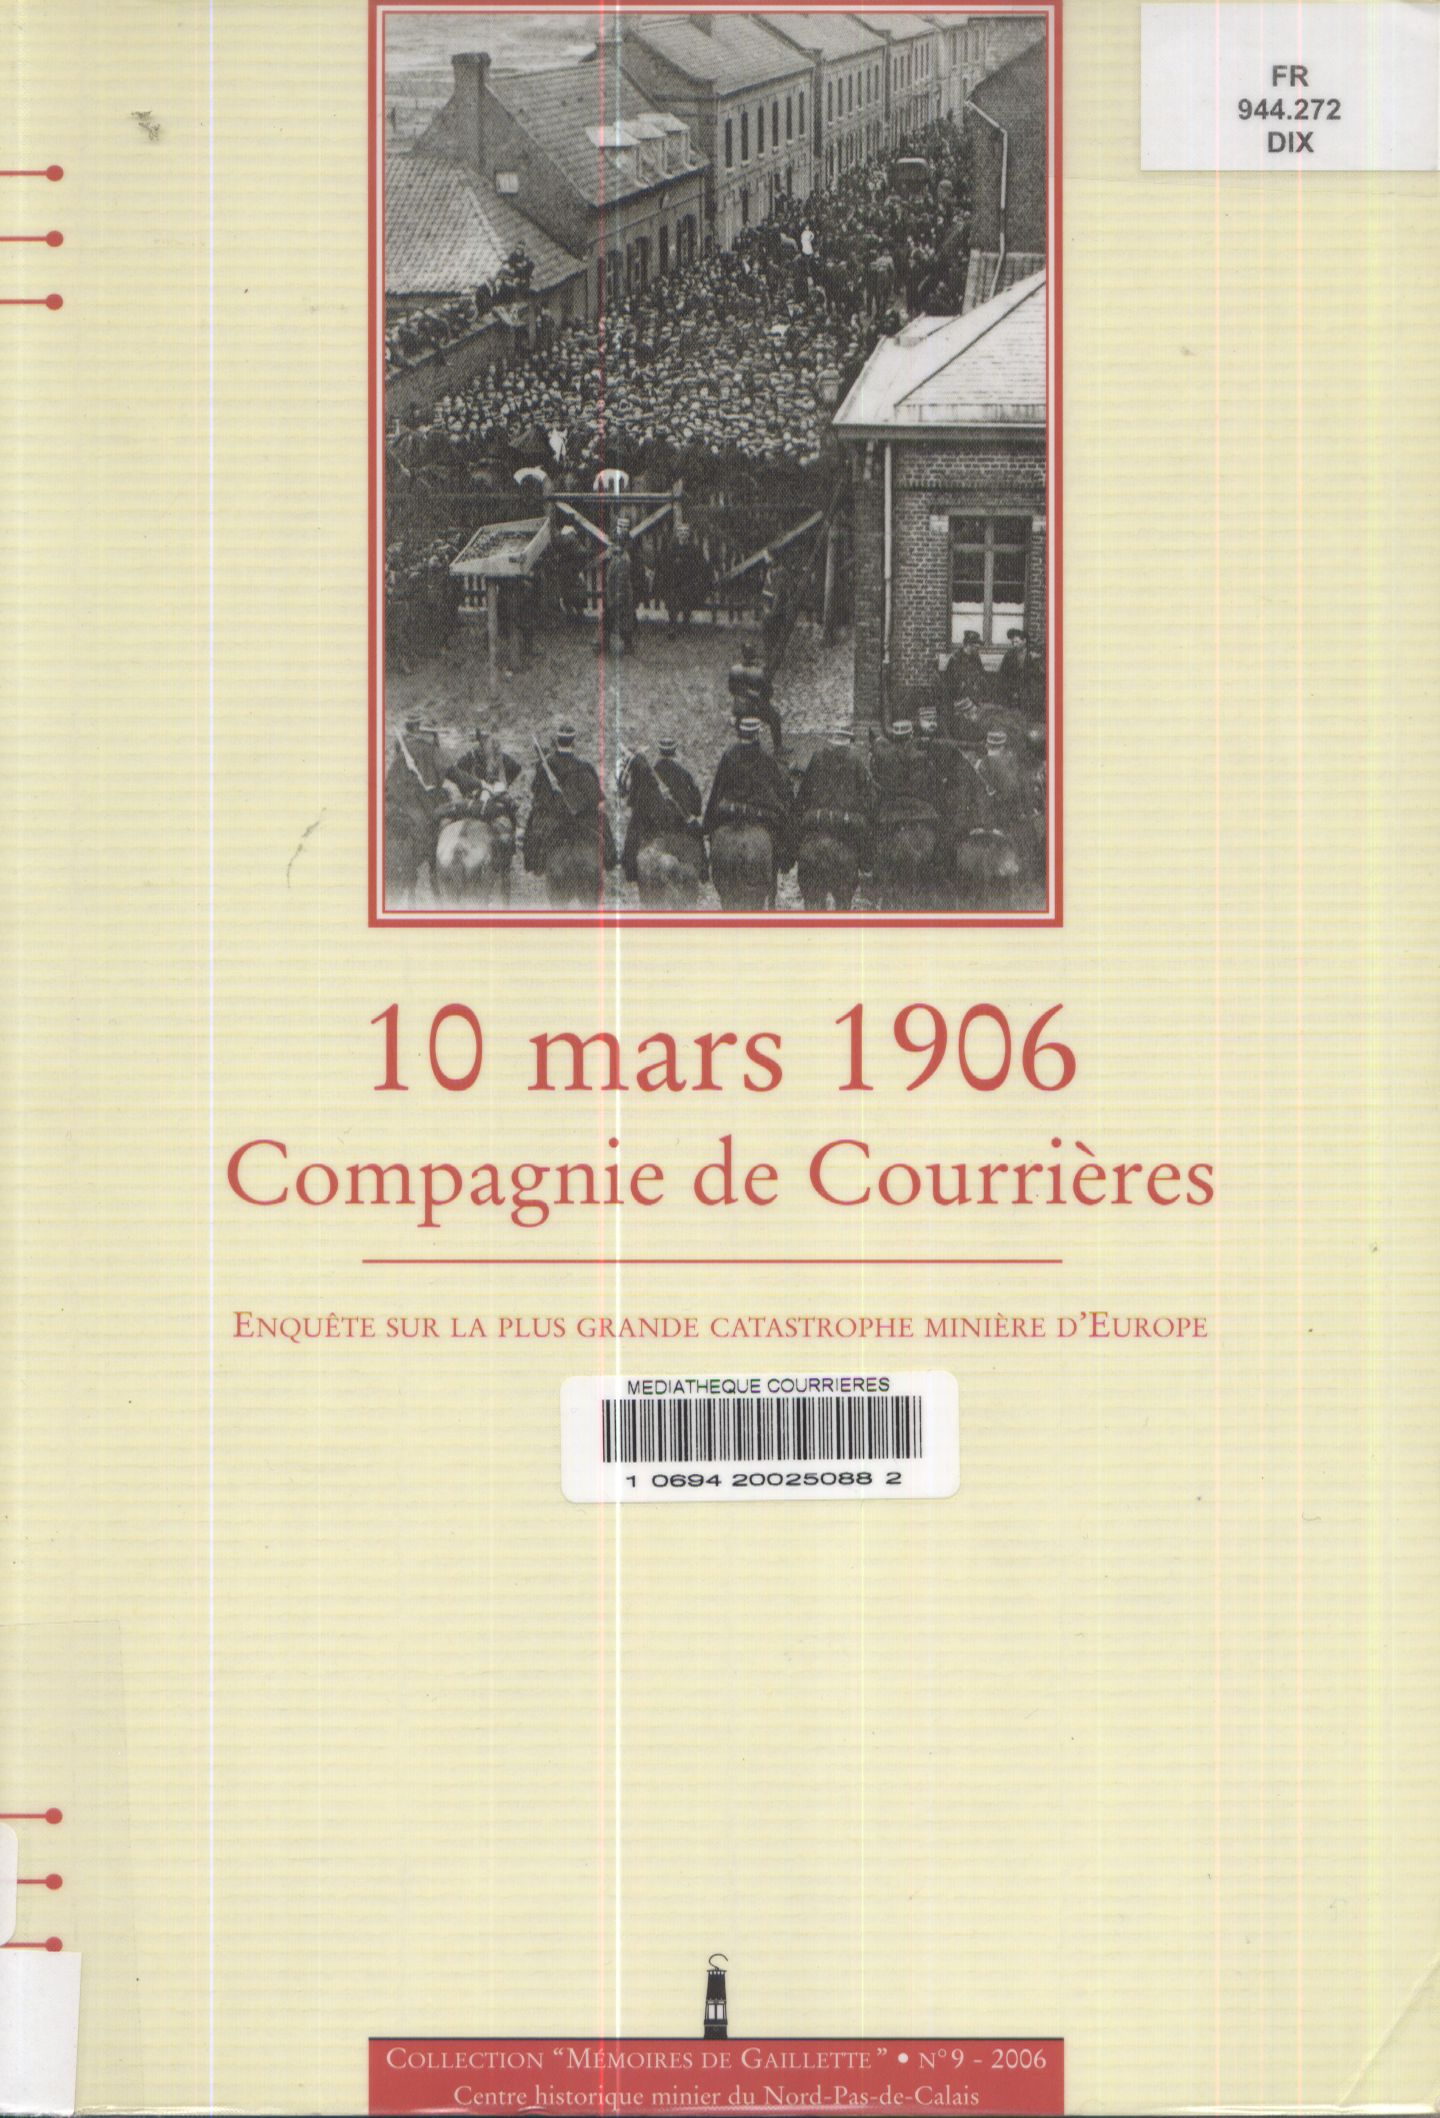 courrieres1906.jpg